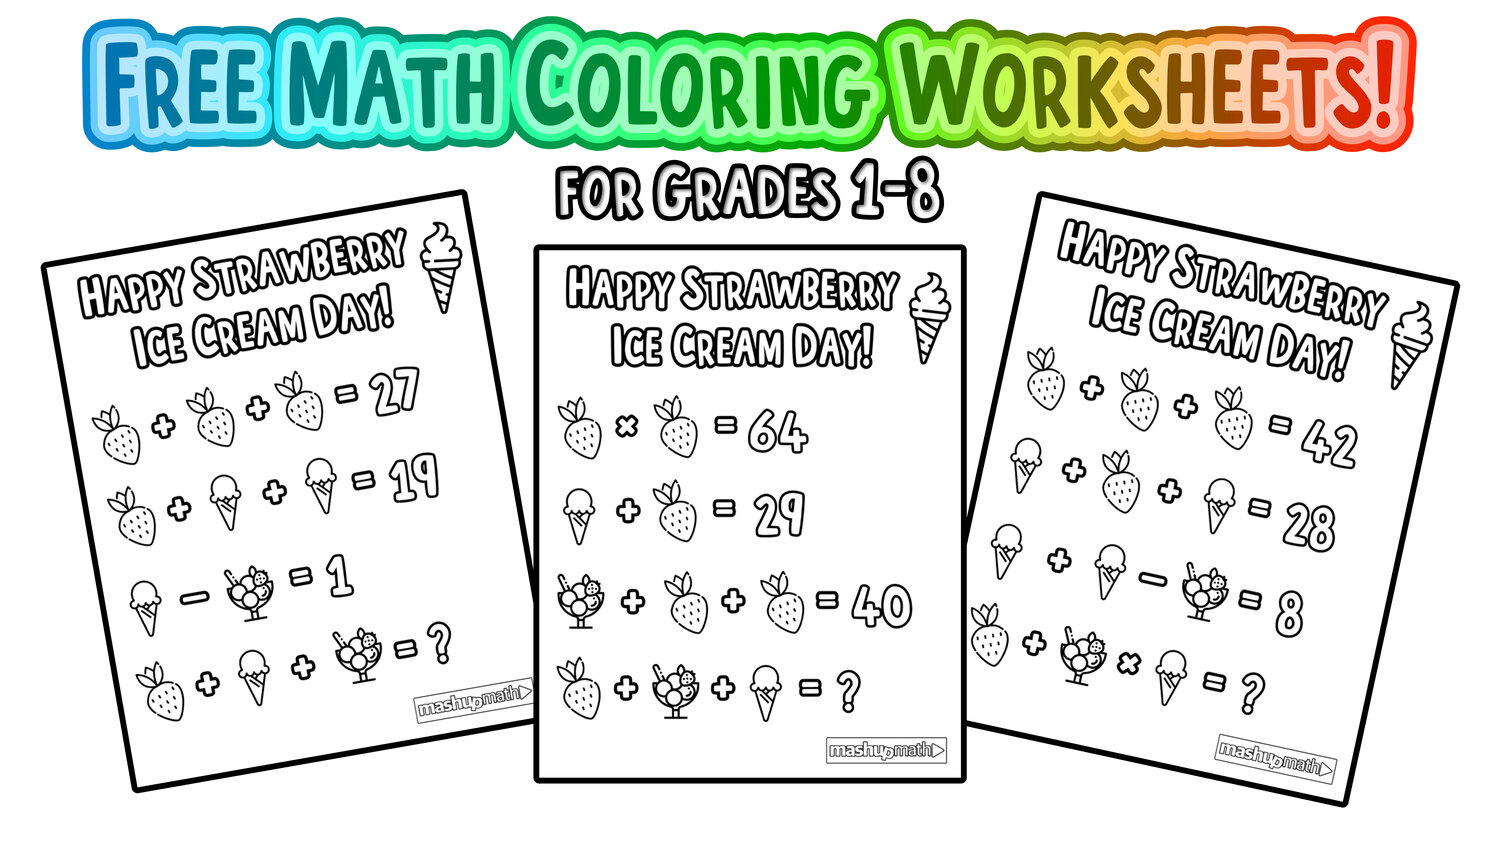 Free Math Coloring Pages For Grades 1 8 Mashup Math